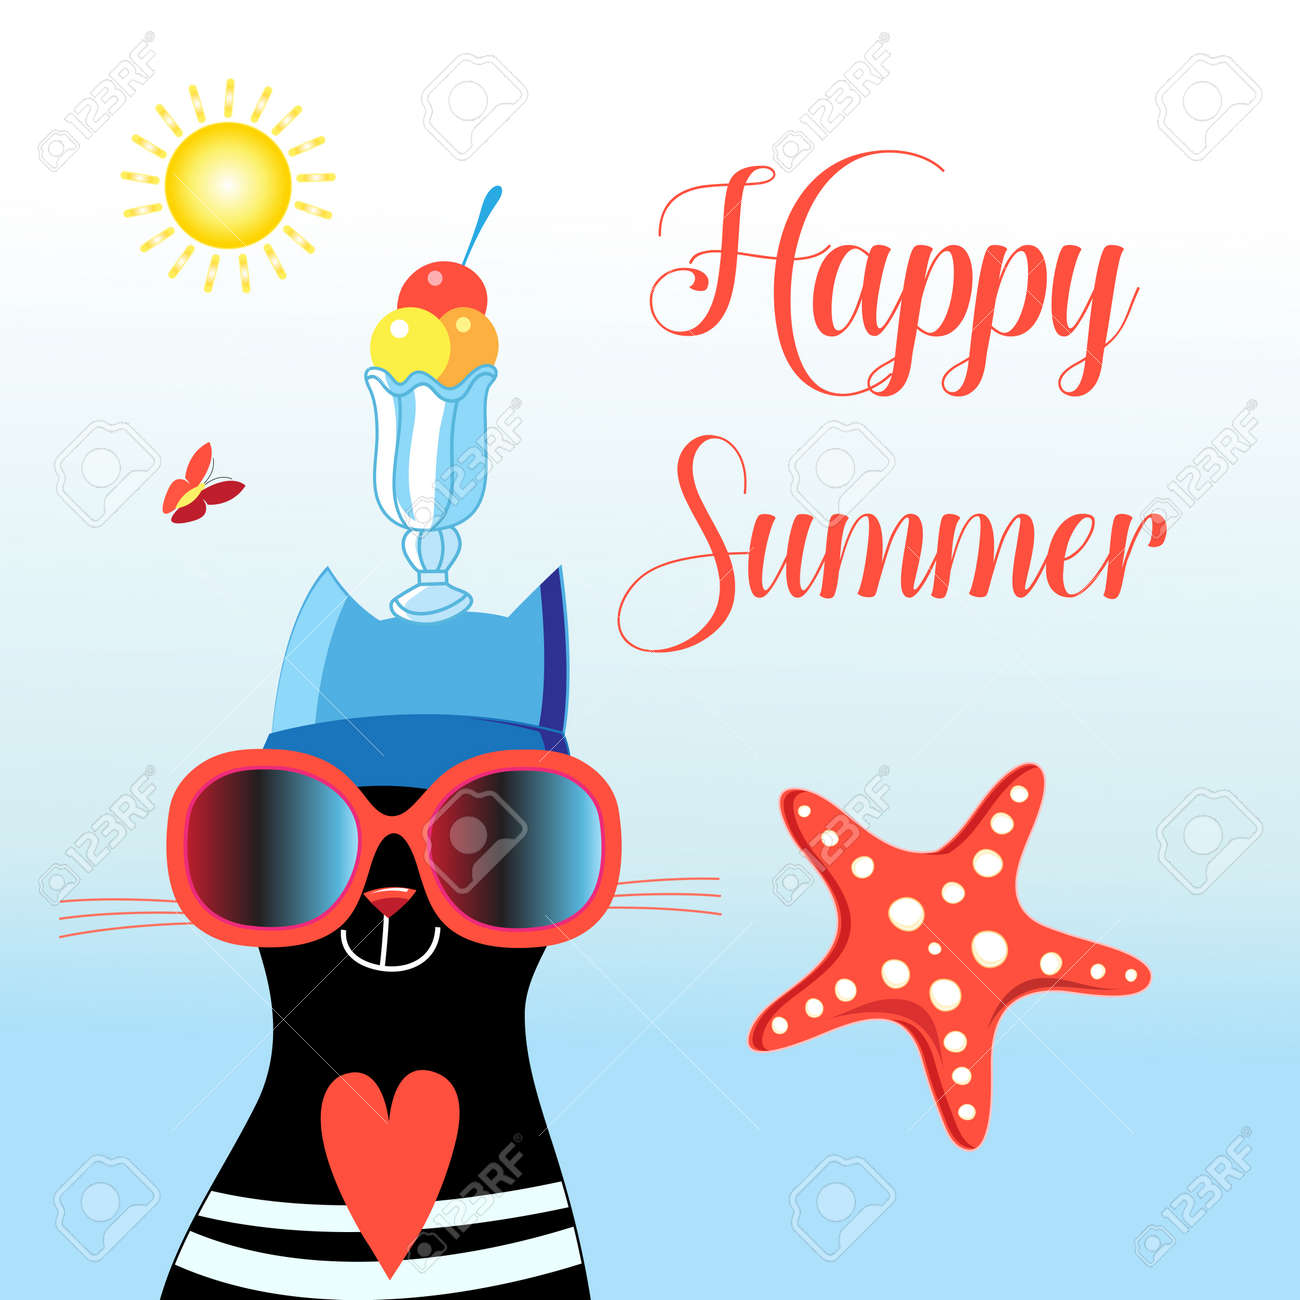 Happy cat with happy summer glasses - 164771301